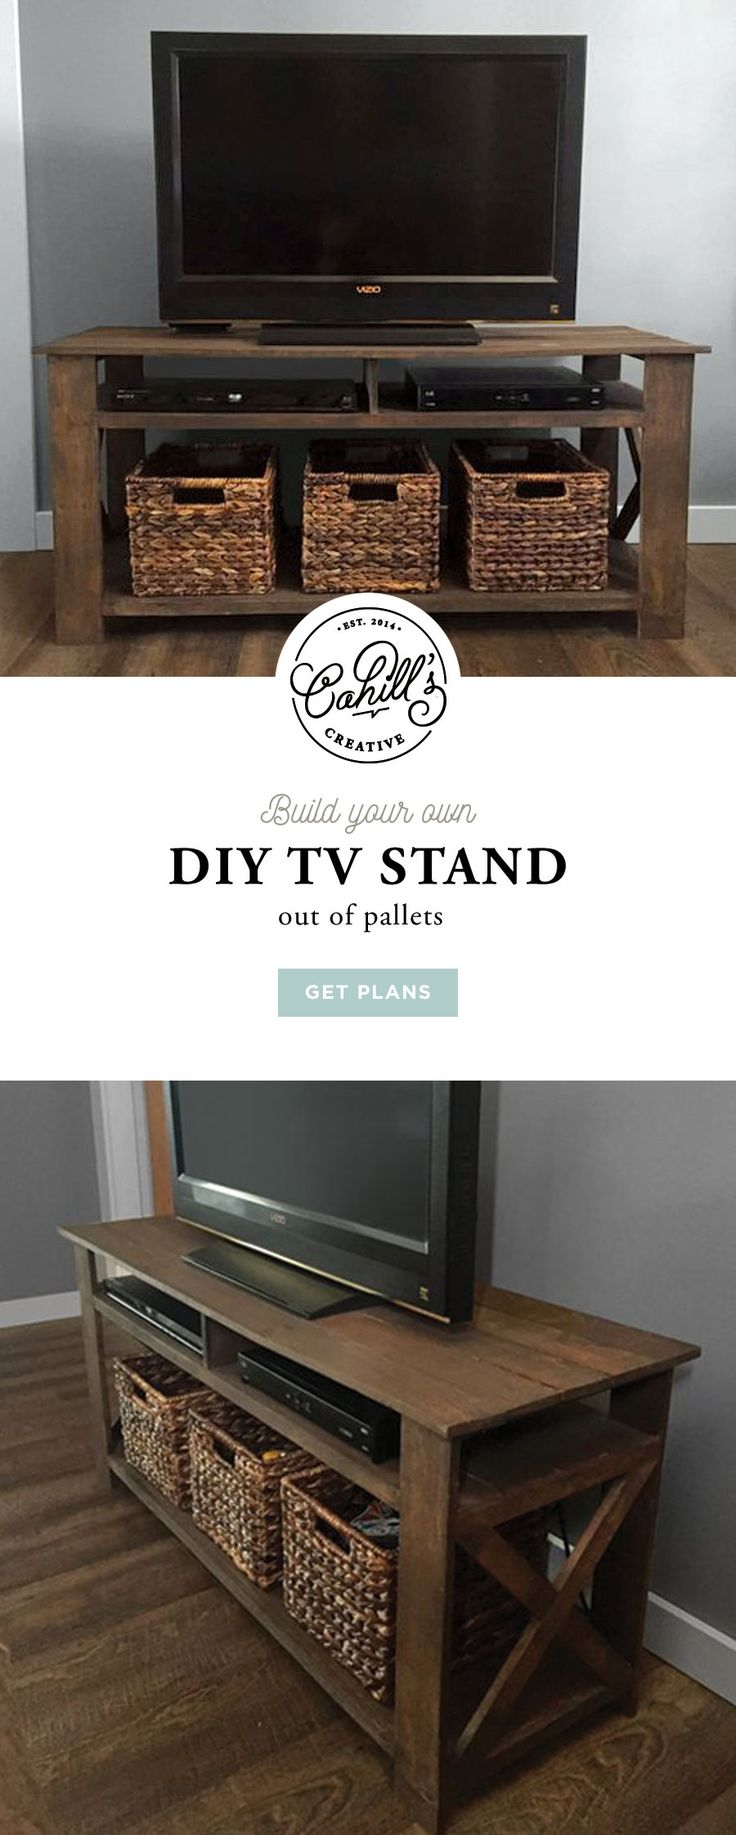 Best 25 Pallet Tv Stands Ideas On Pinterest How To Make Tv Stand Out Of Pallets Diy Tv Stand